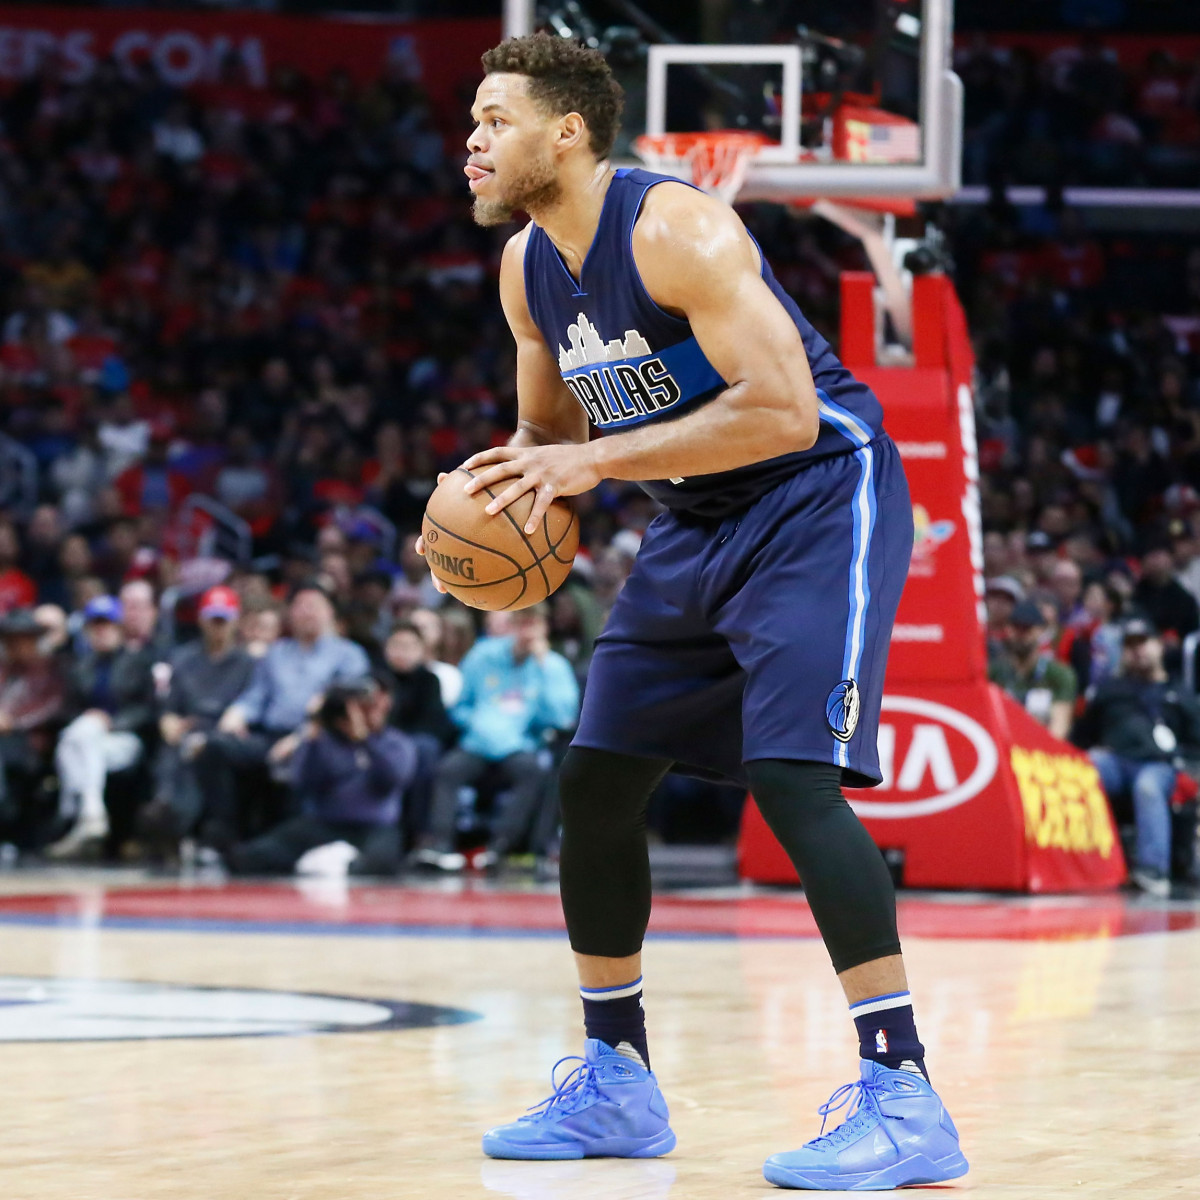 Stats: Justin Anderson's Top 10 Scoring Games